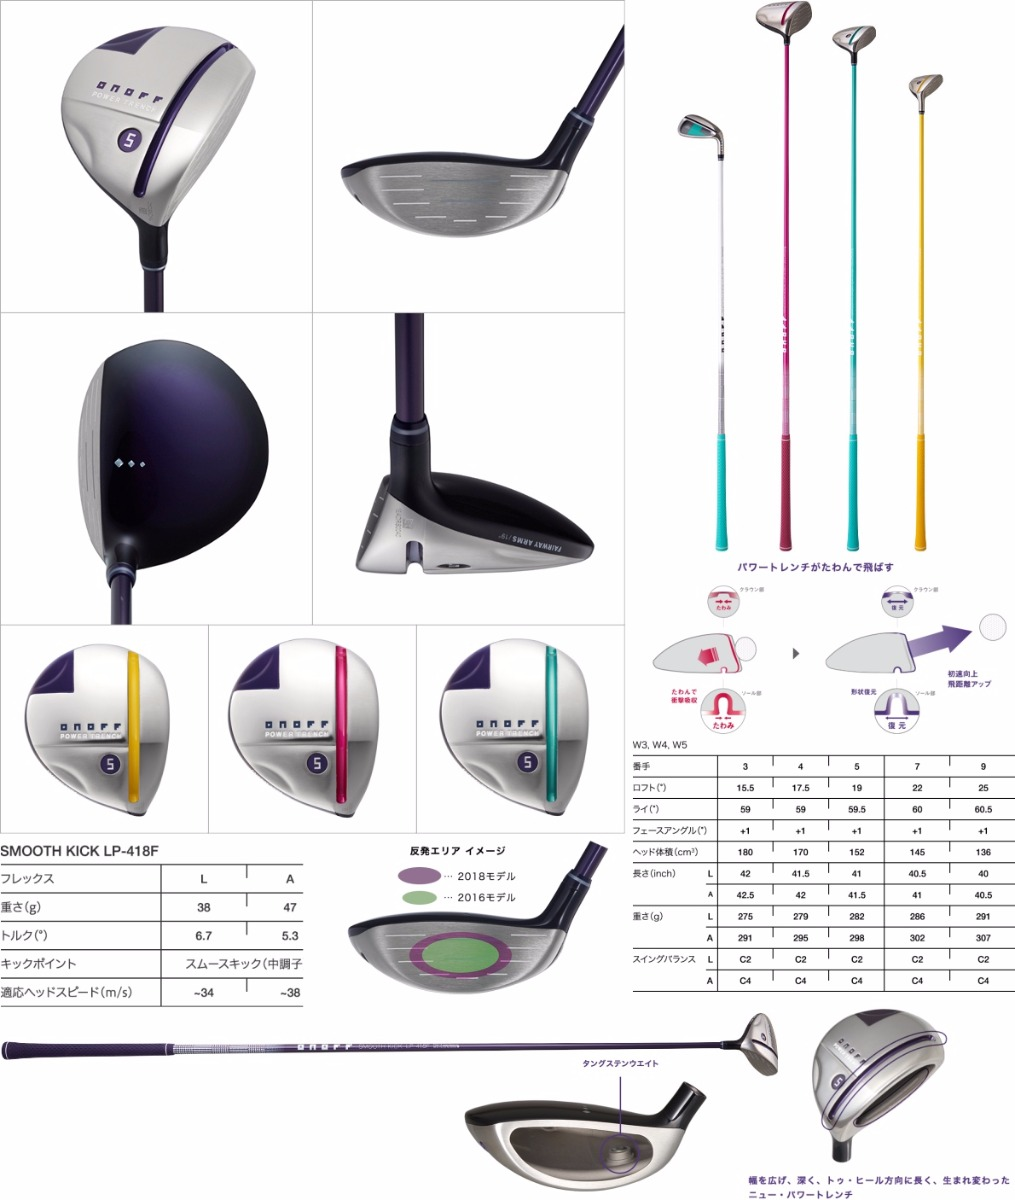 ONOFF 2018 Lady Fairway Arms Fairway Wood